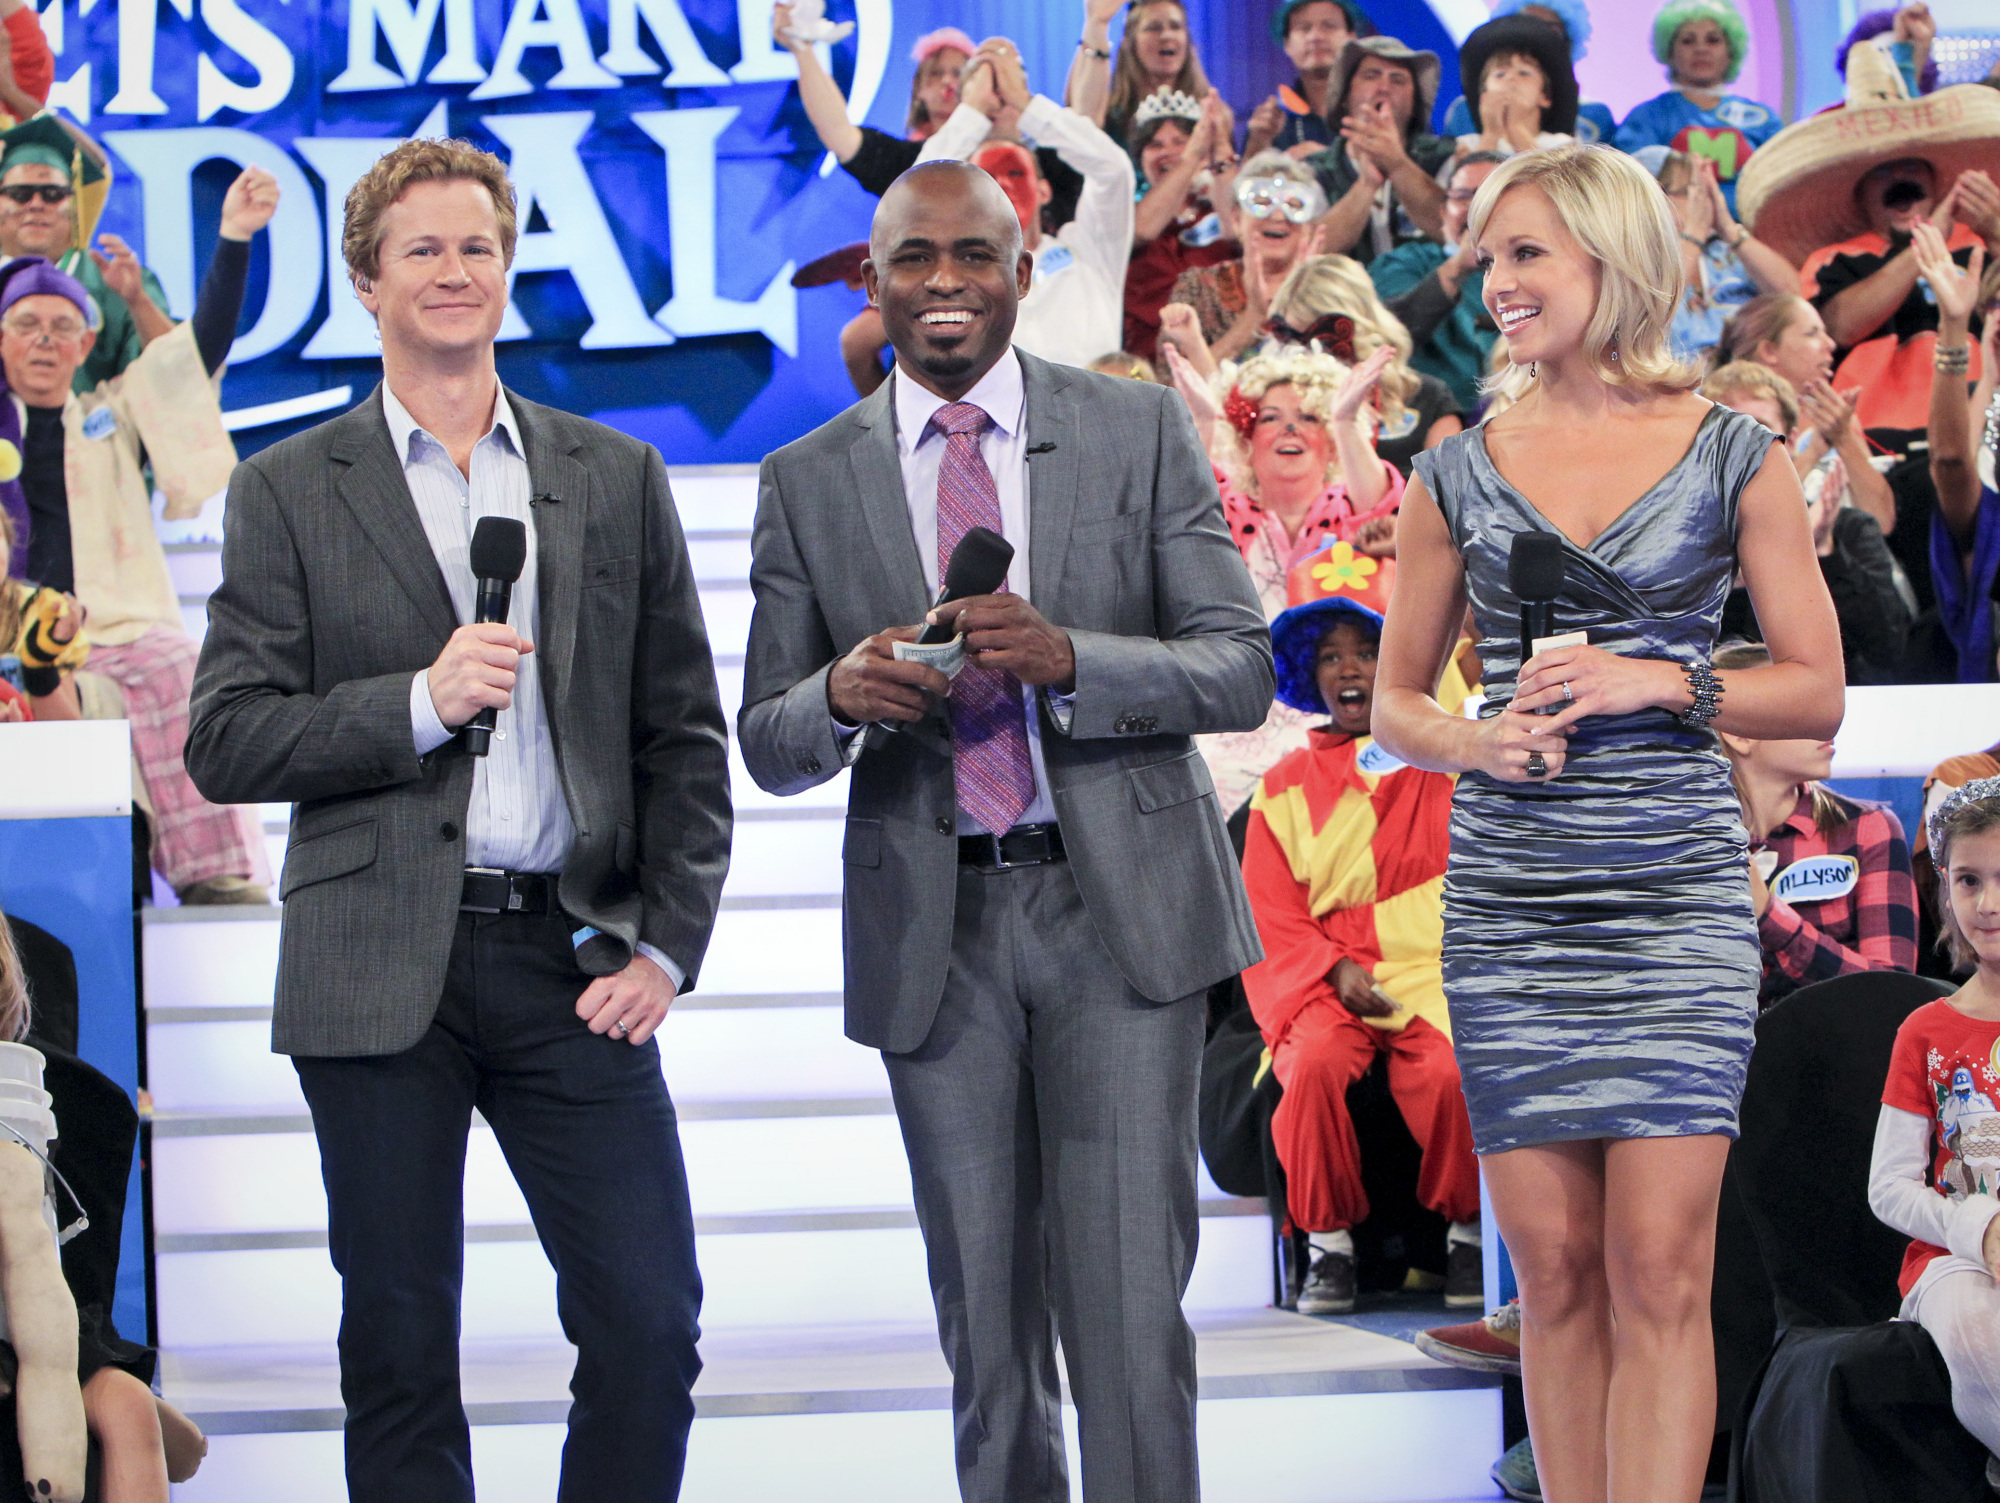 LMAD's Wayne, Jonathan, and Tiffany